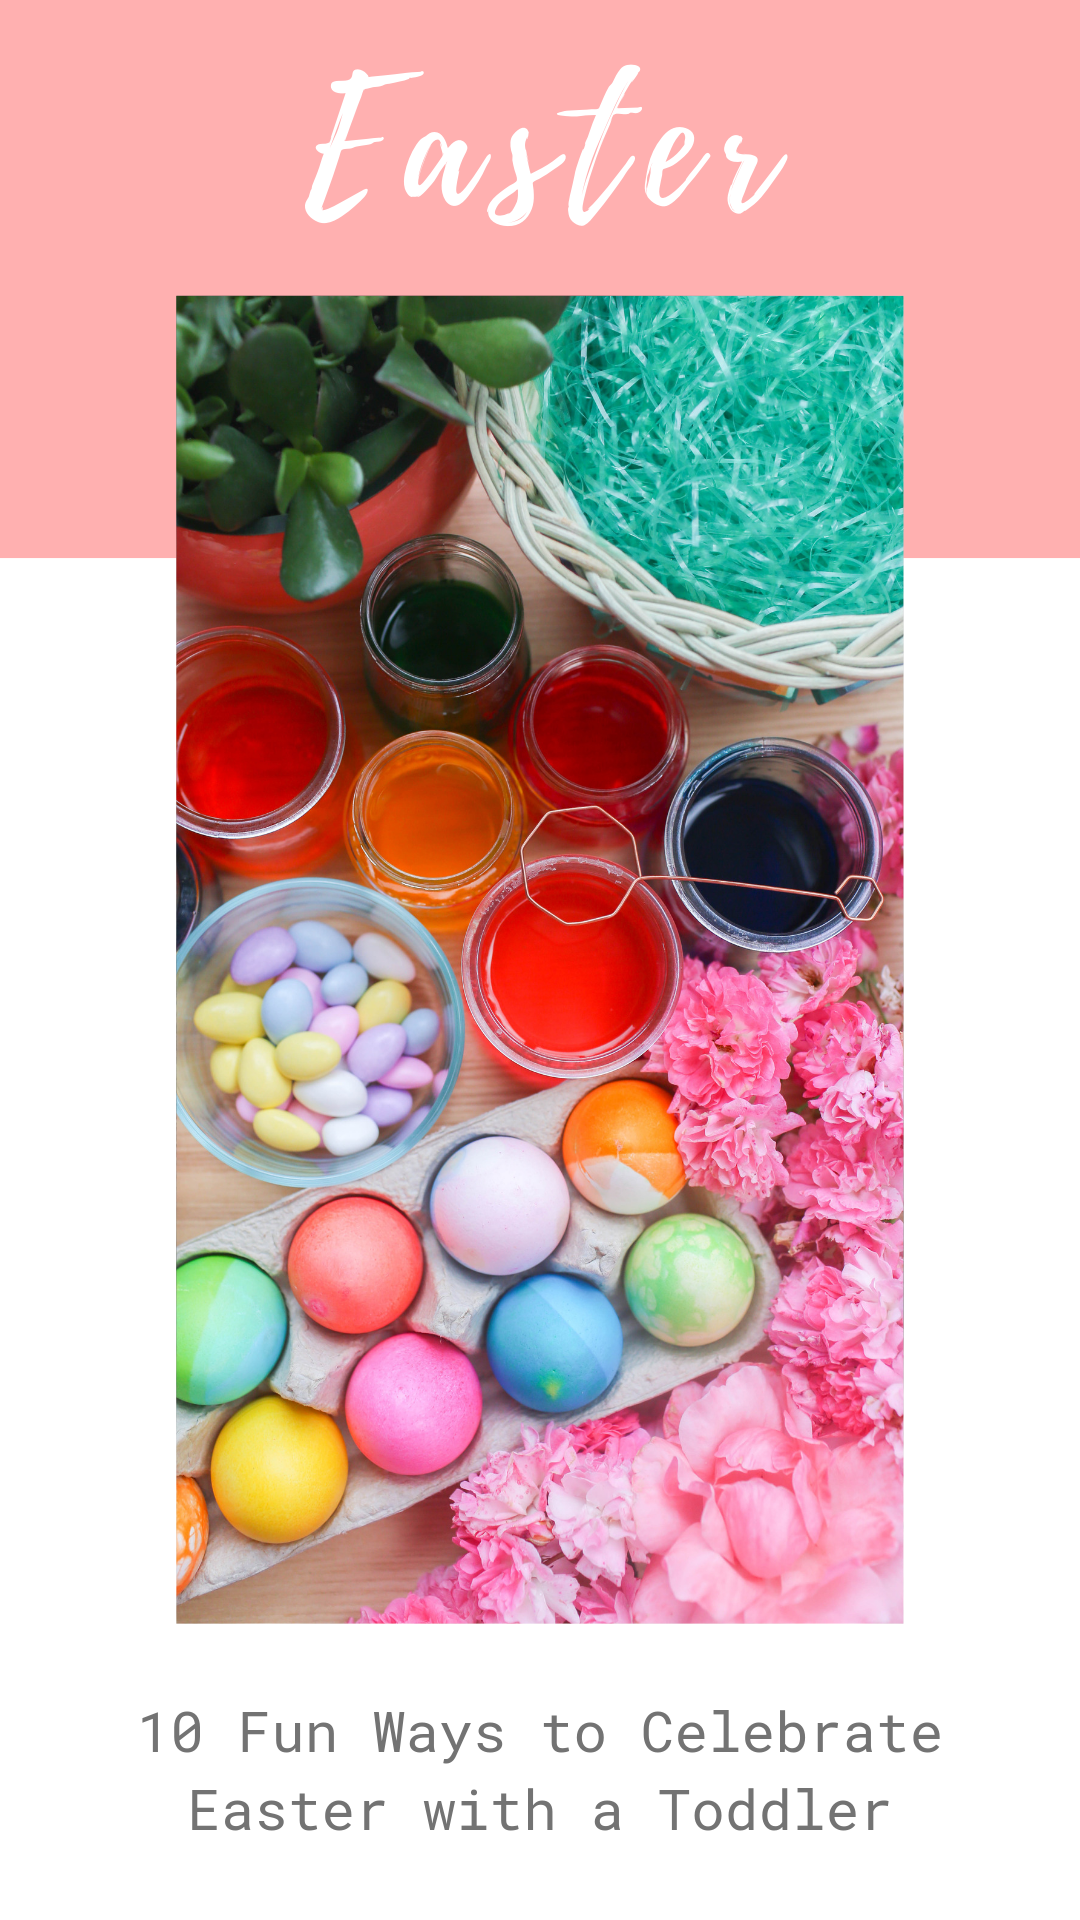 10 Fun Ways to Celebrate Easter with a Toddler Pin.png